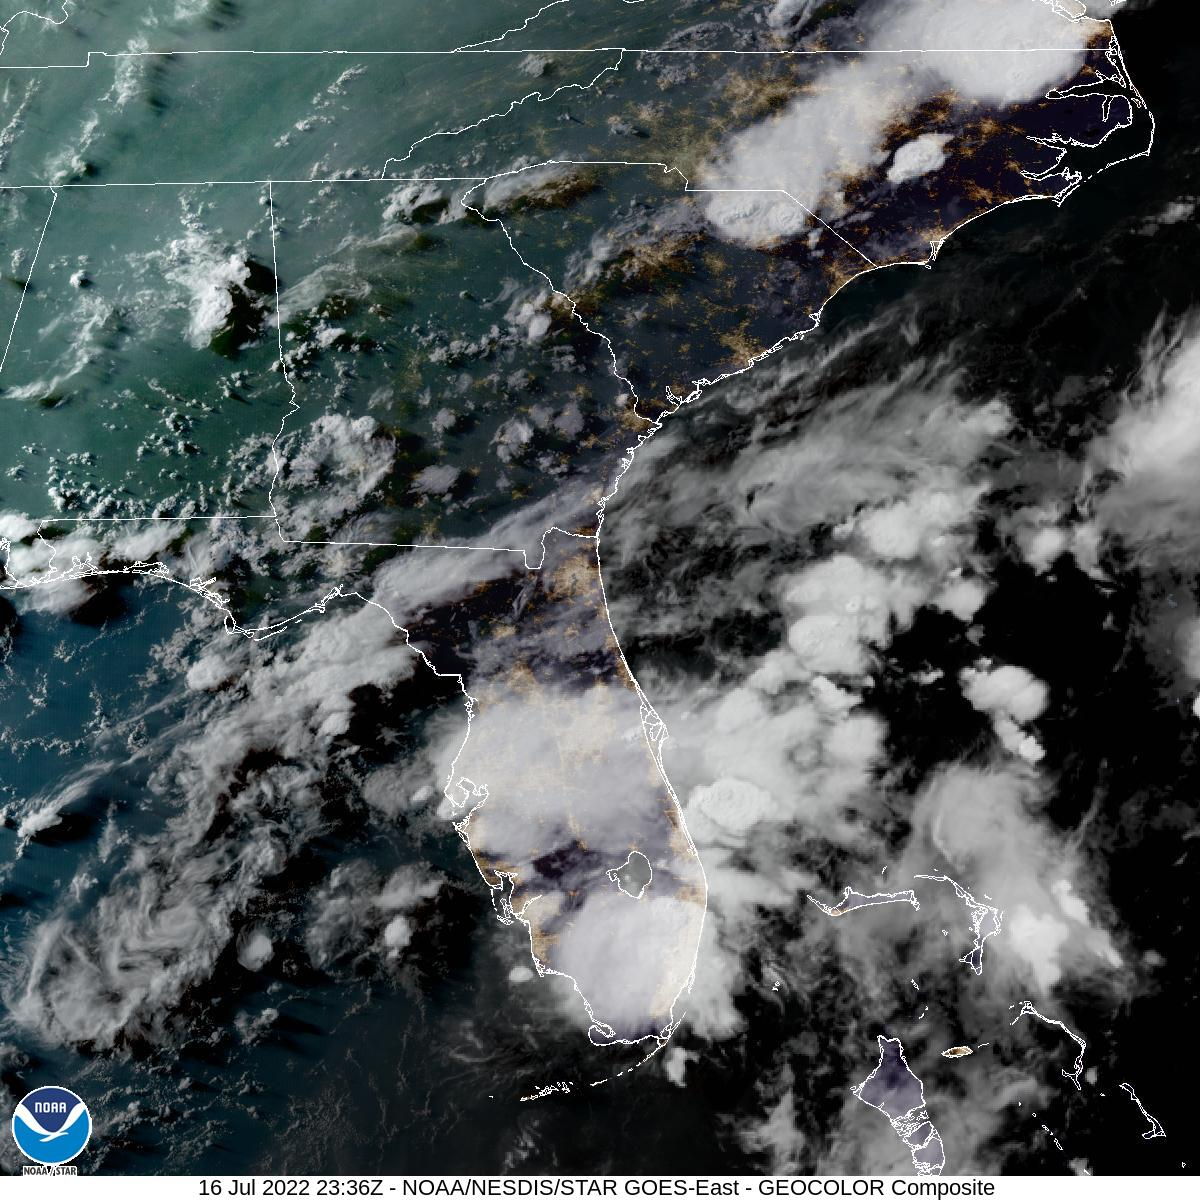 Latest GOES-16 Geocolor Image of Southeast sector